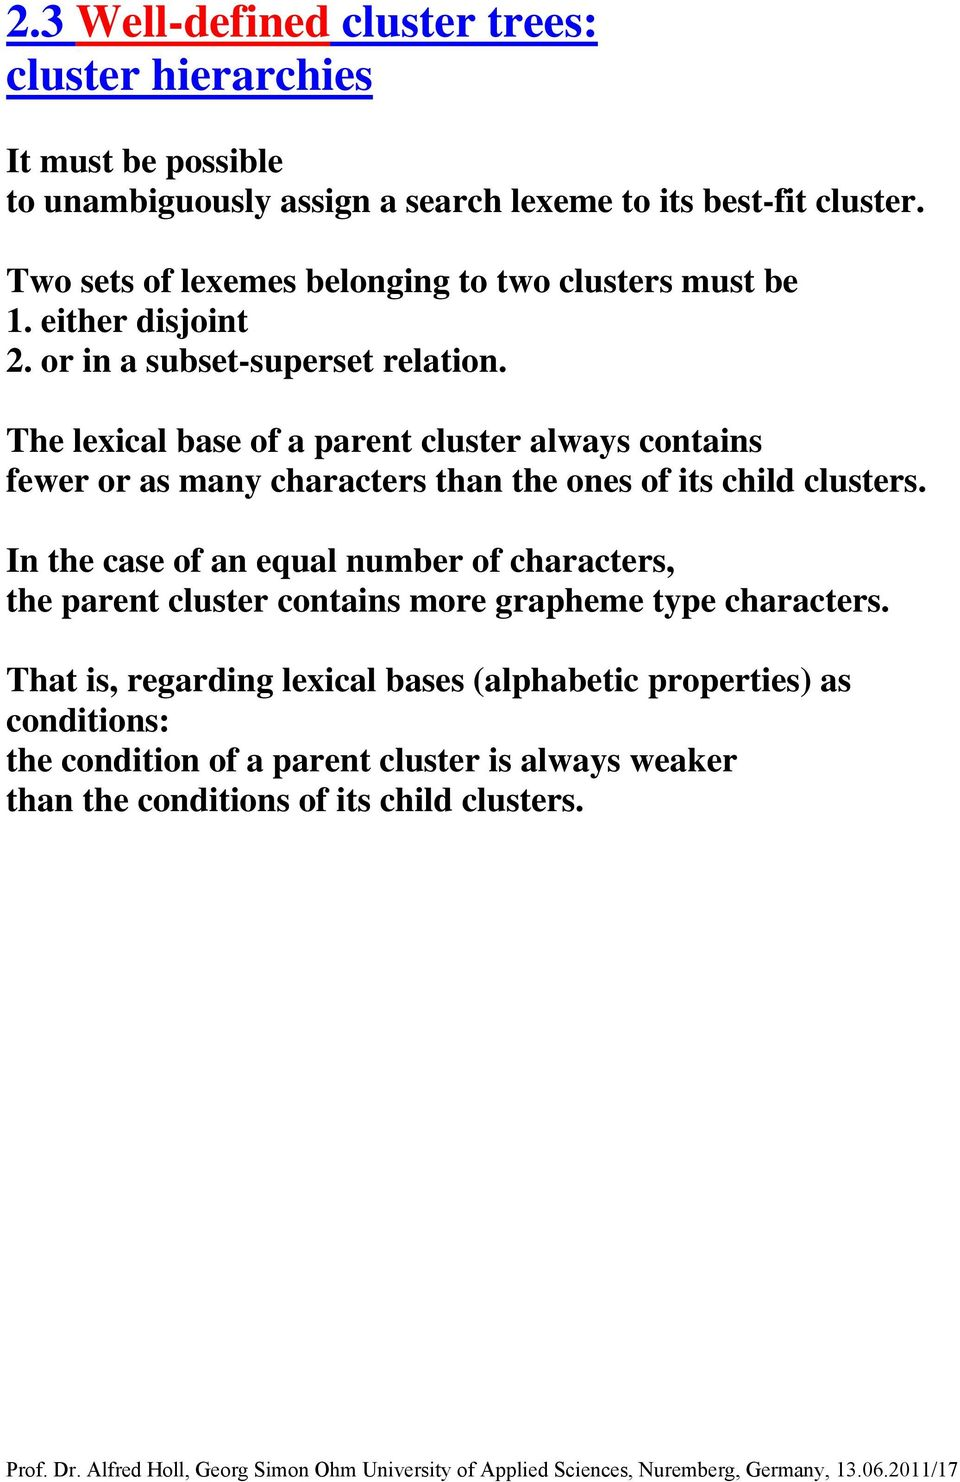 The lexical base of a parent cluster always contains fewer or as many characters than the ones of its child clusters.